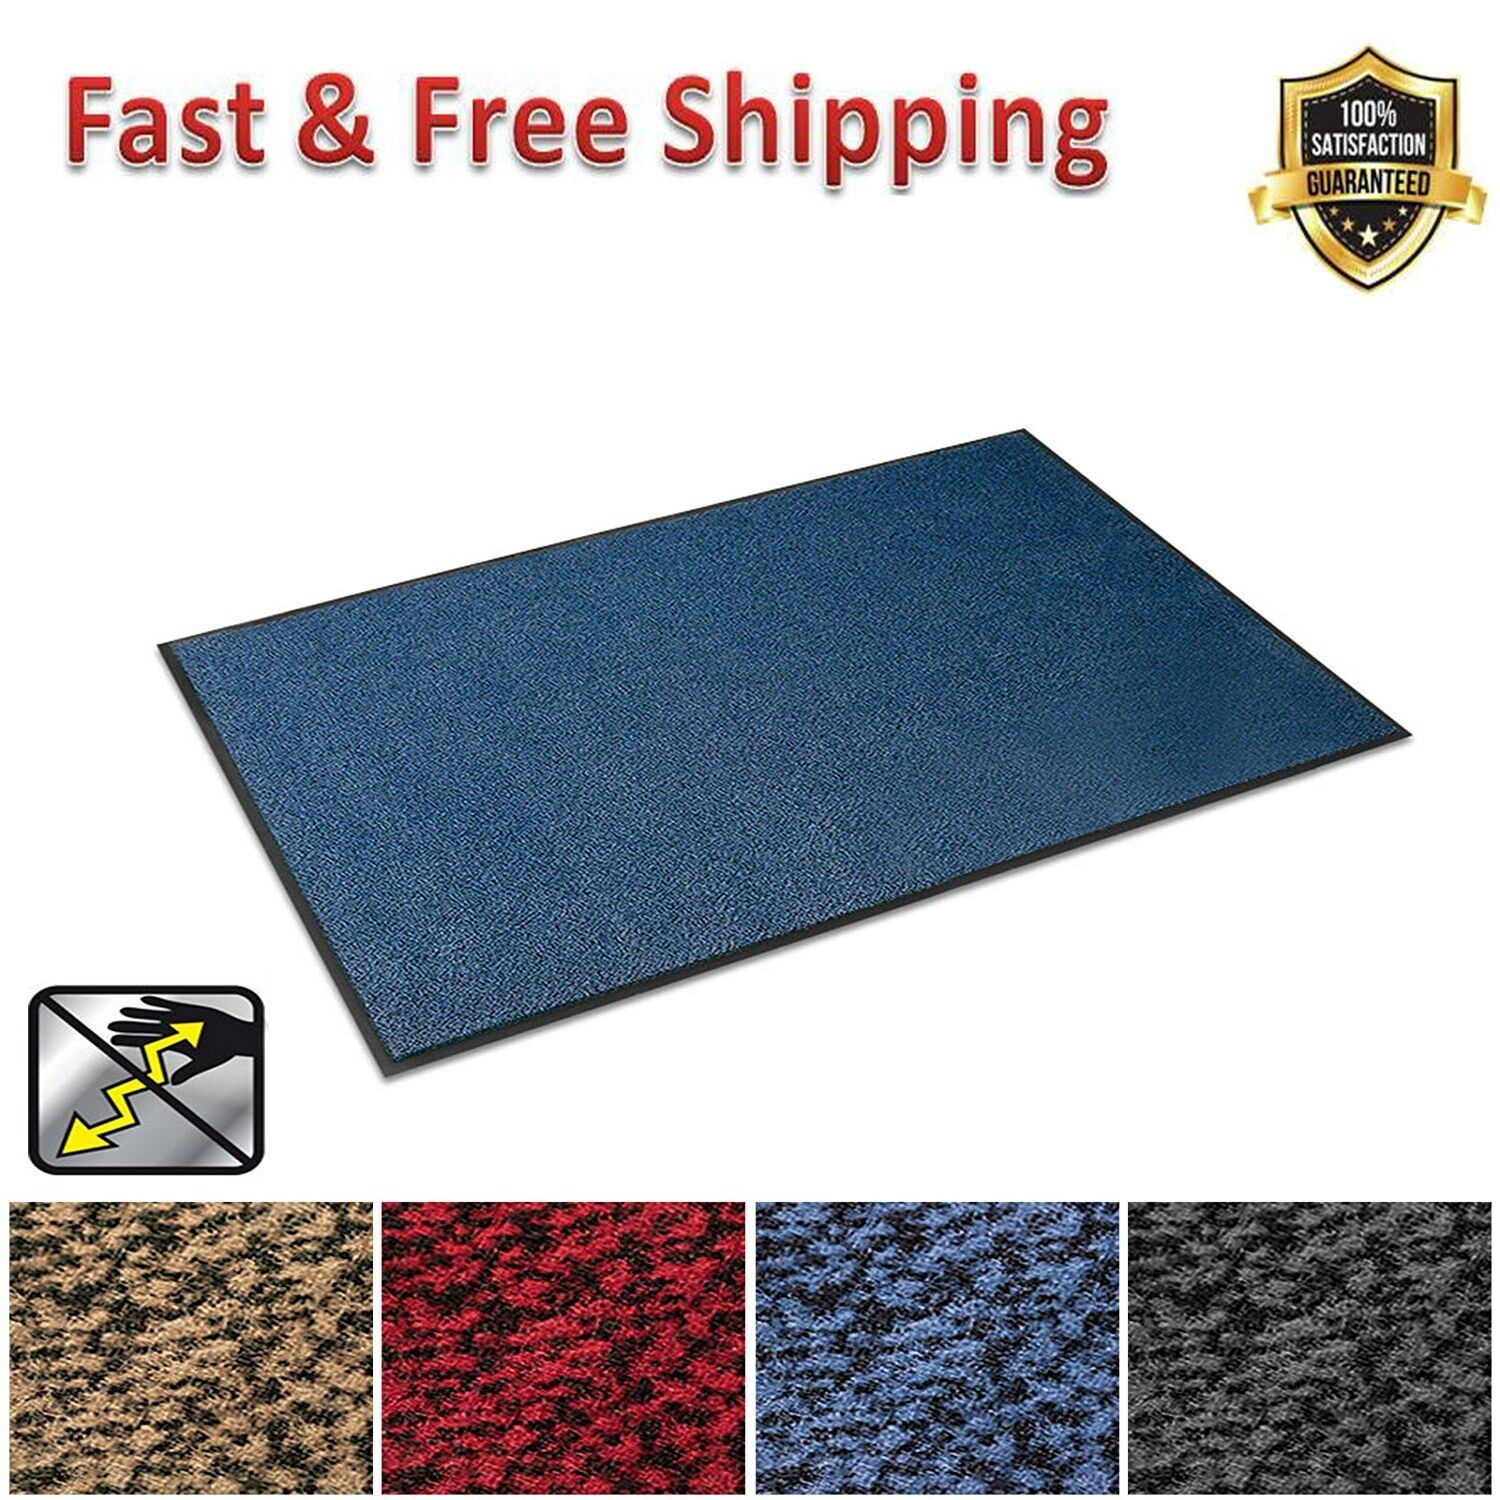 Anti Static Entrance Mat Indoor Indoor Indoor Outdoor Front Door Entry Rug 36  x 48  Blau New 82d11e